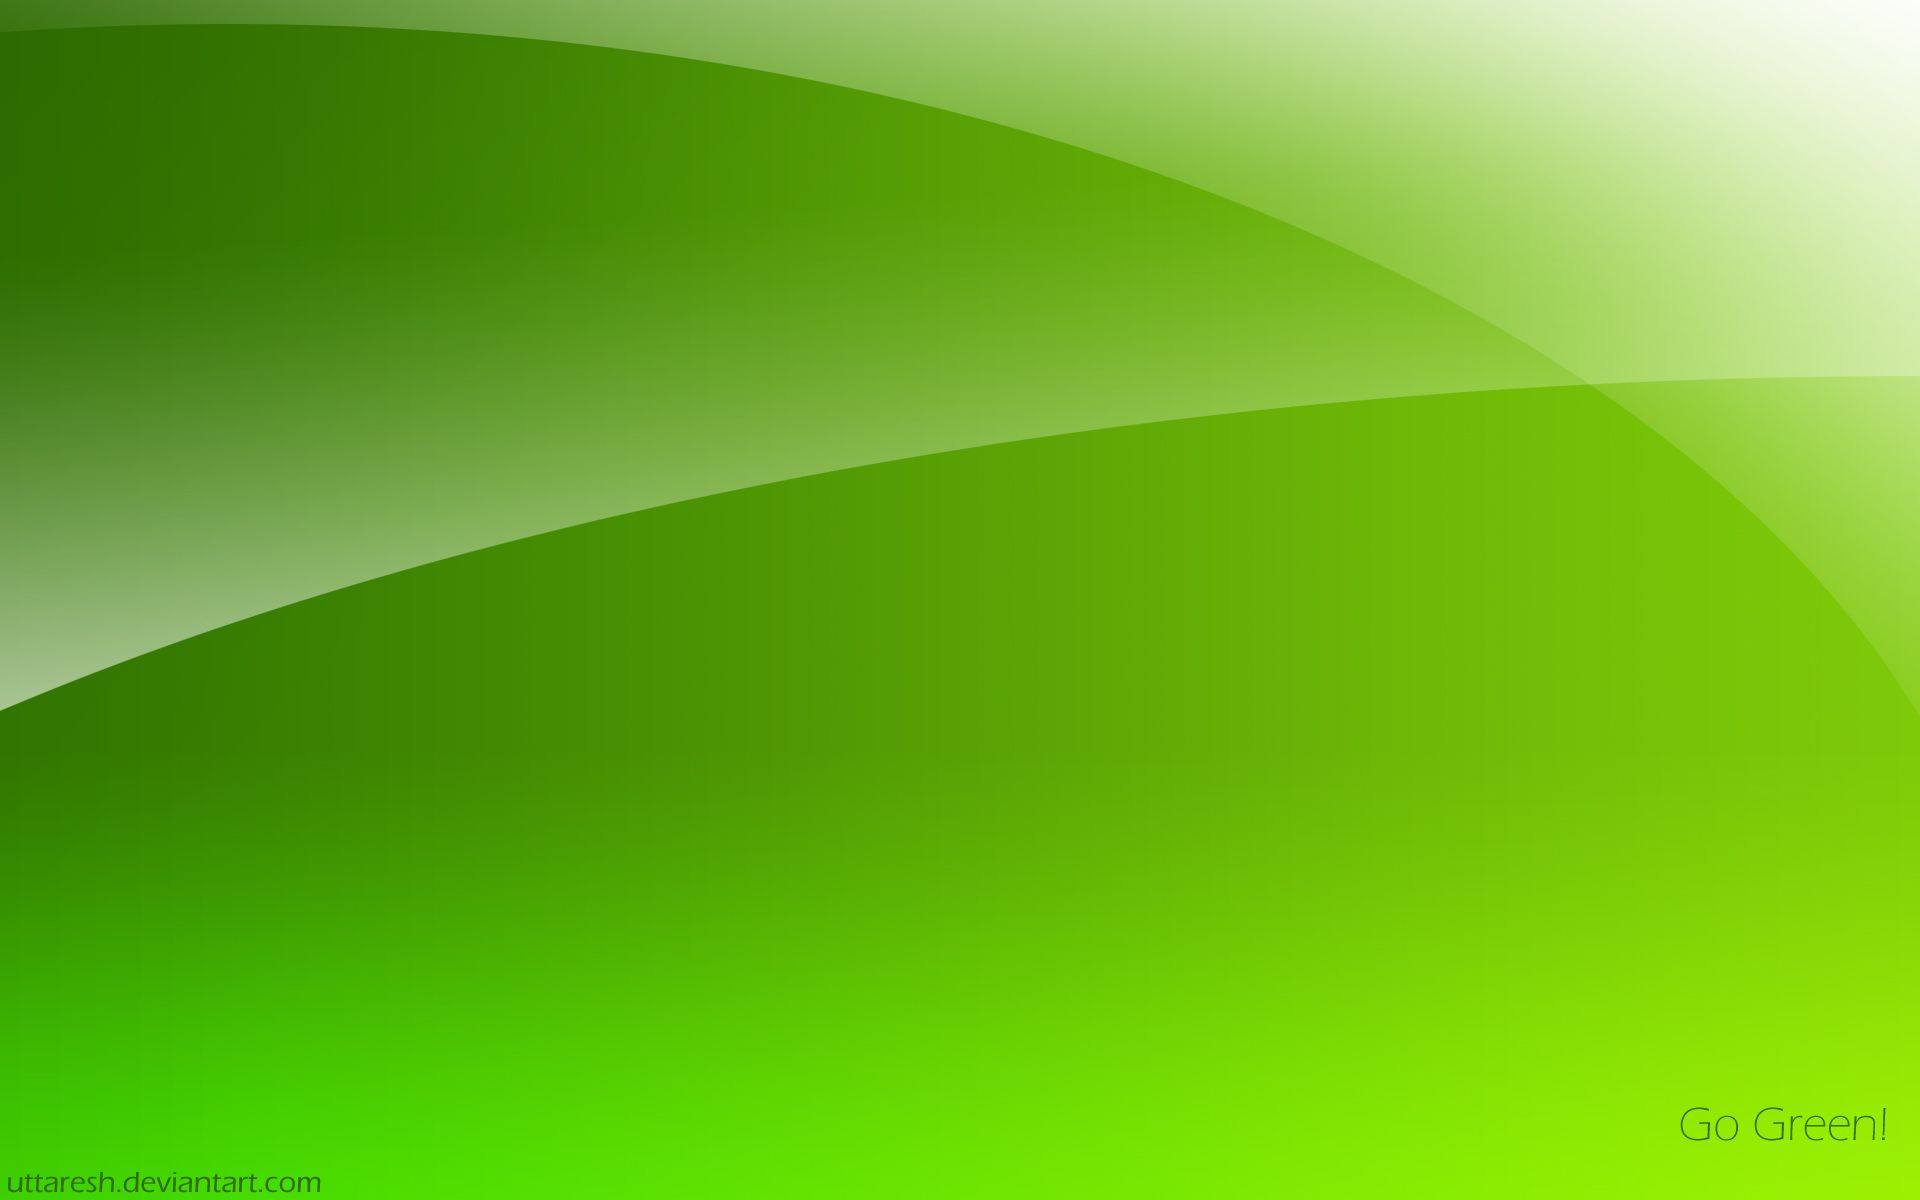 the nature green color hd wallpapers good for your eyes green hd wallpapers wallpapers